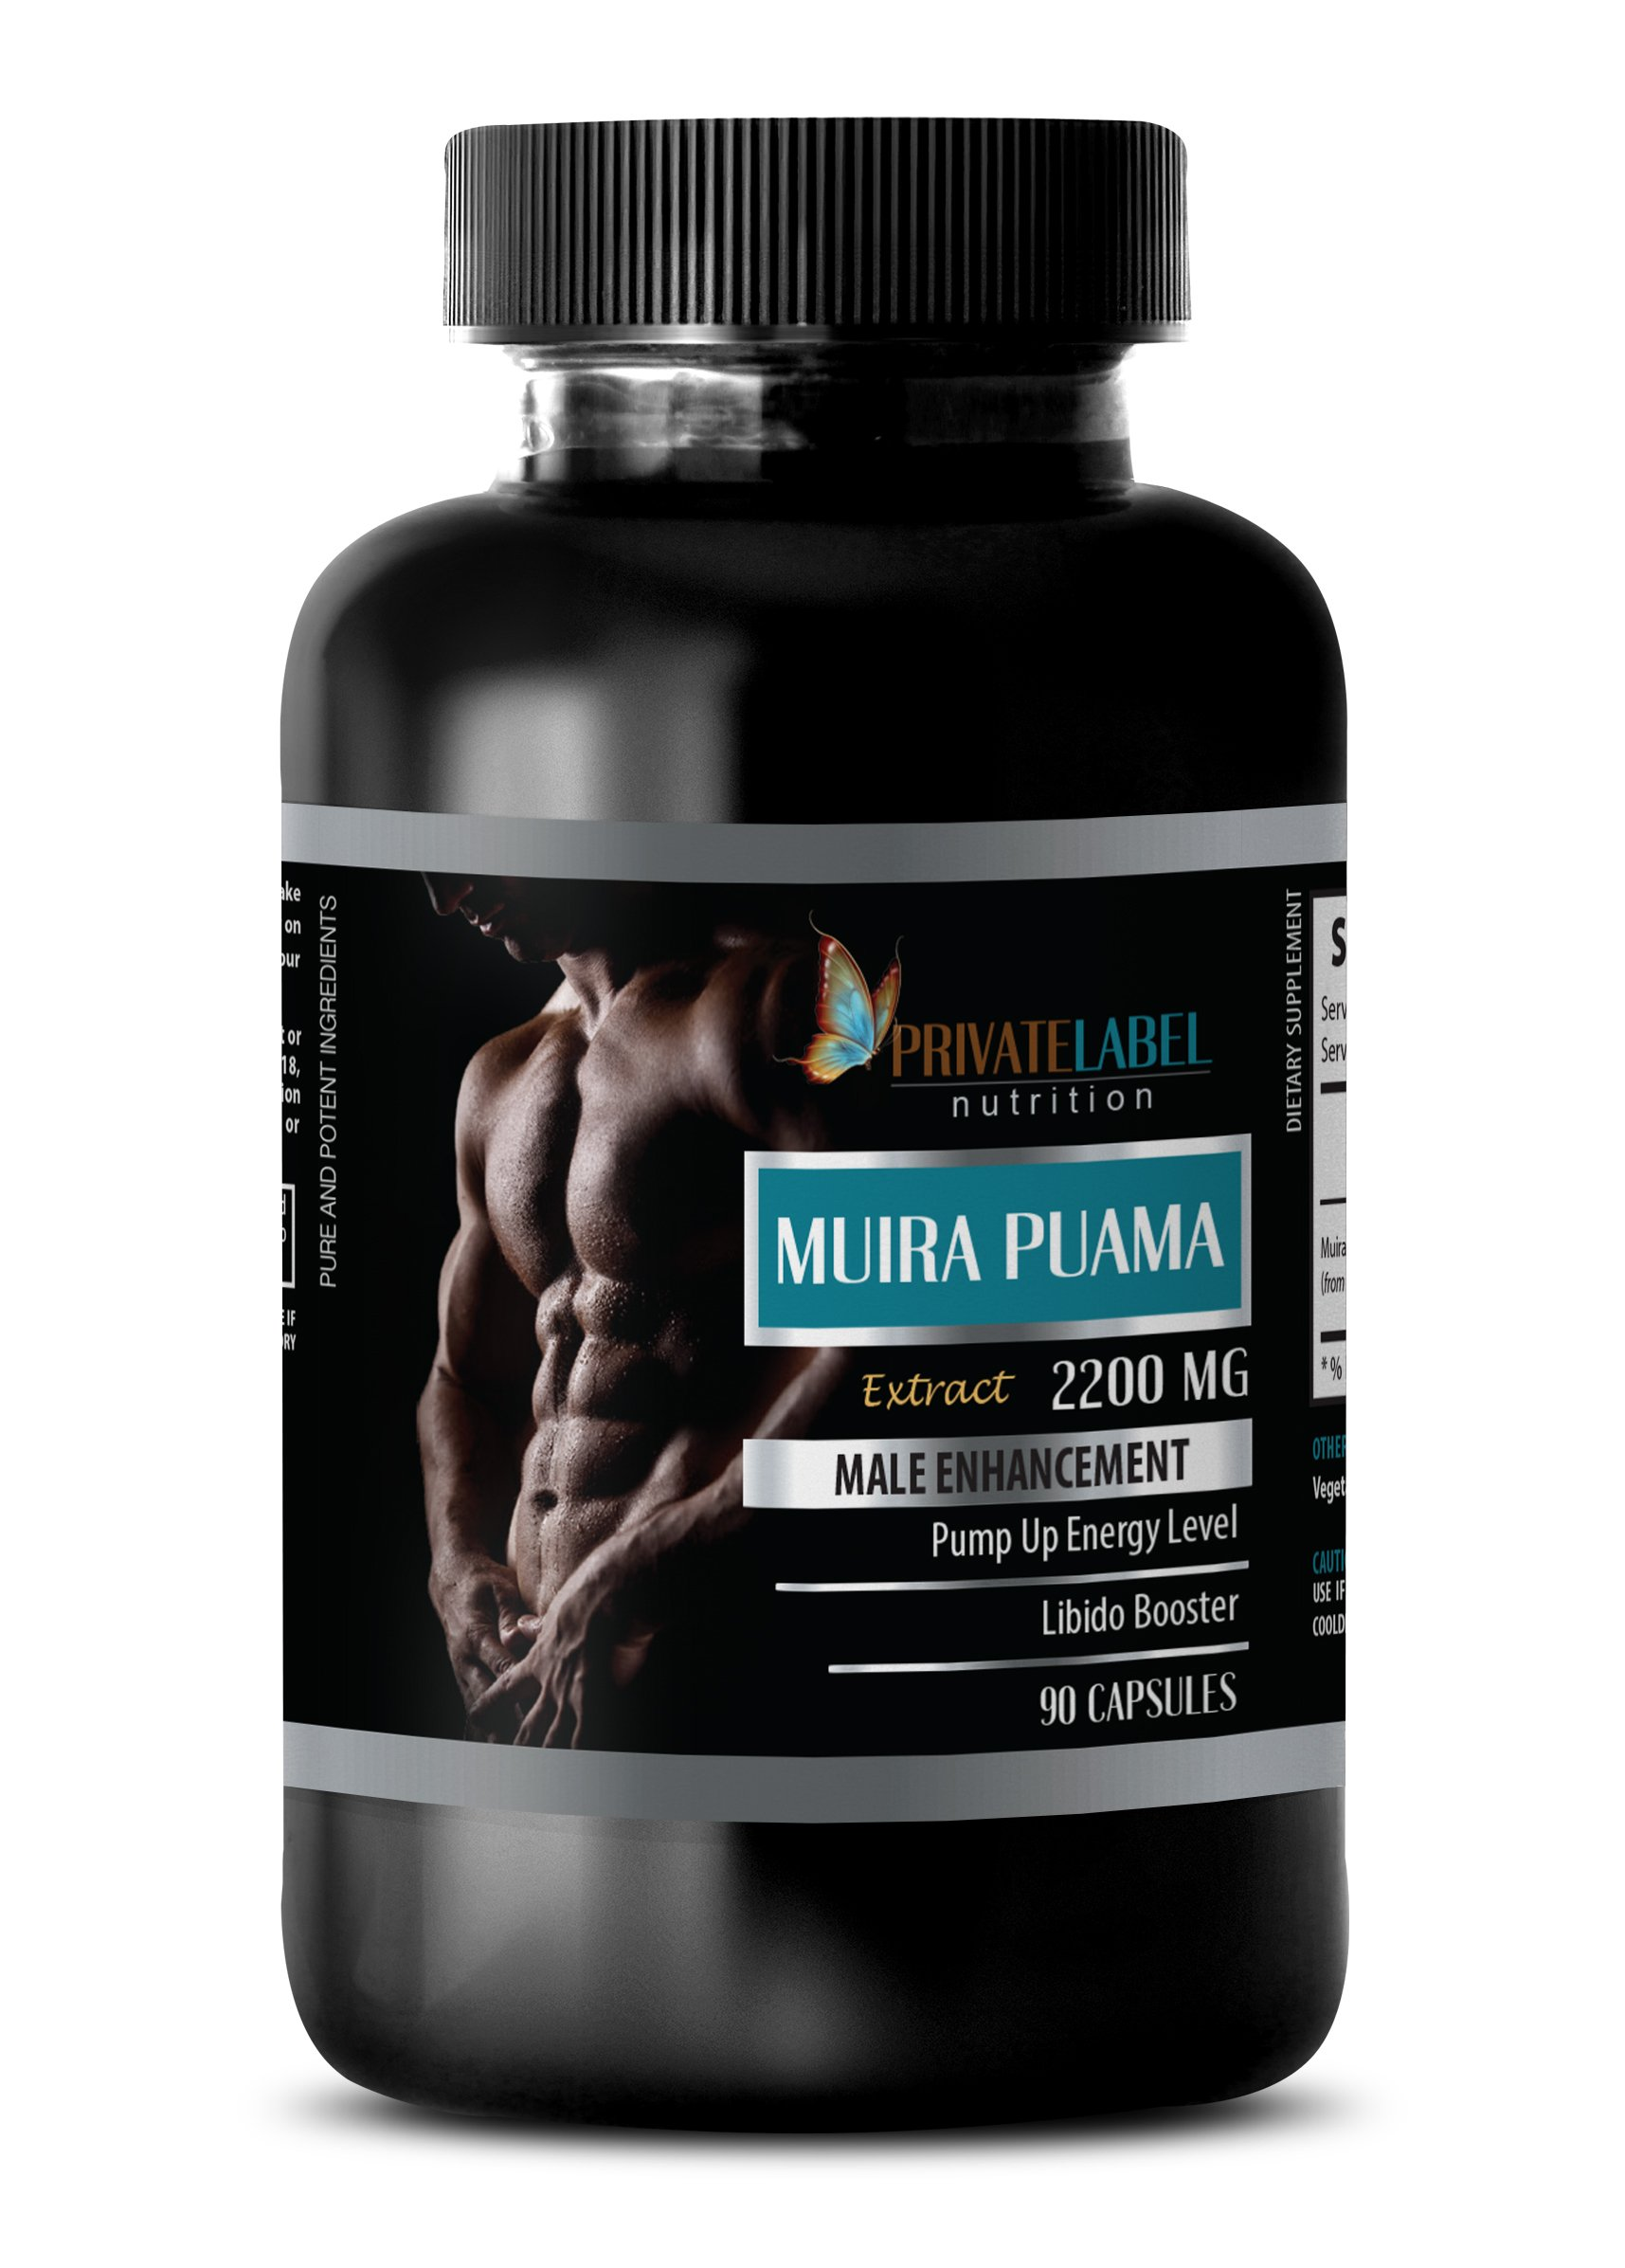 pills for men for sex - MUIRA PUAMA EXTRACT 2200Mg - MALE ENHANCEMENT - brain and memory power boost - 1 Bottle (90 Capsules)